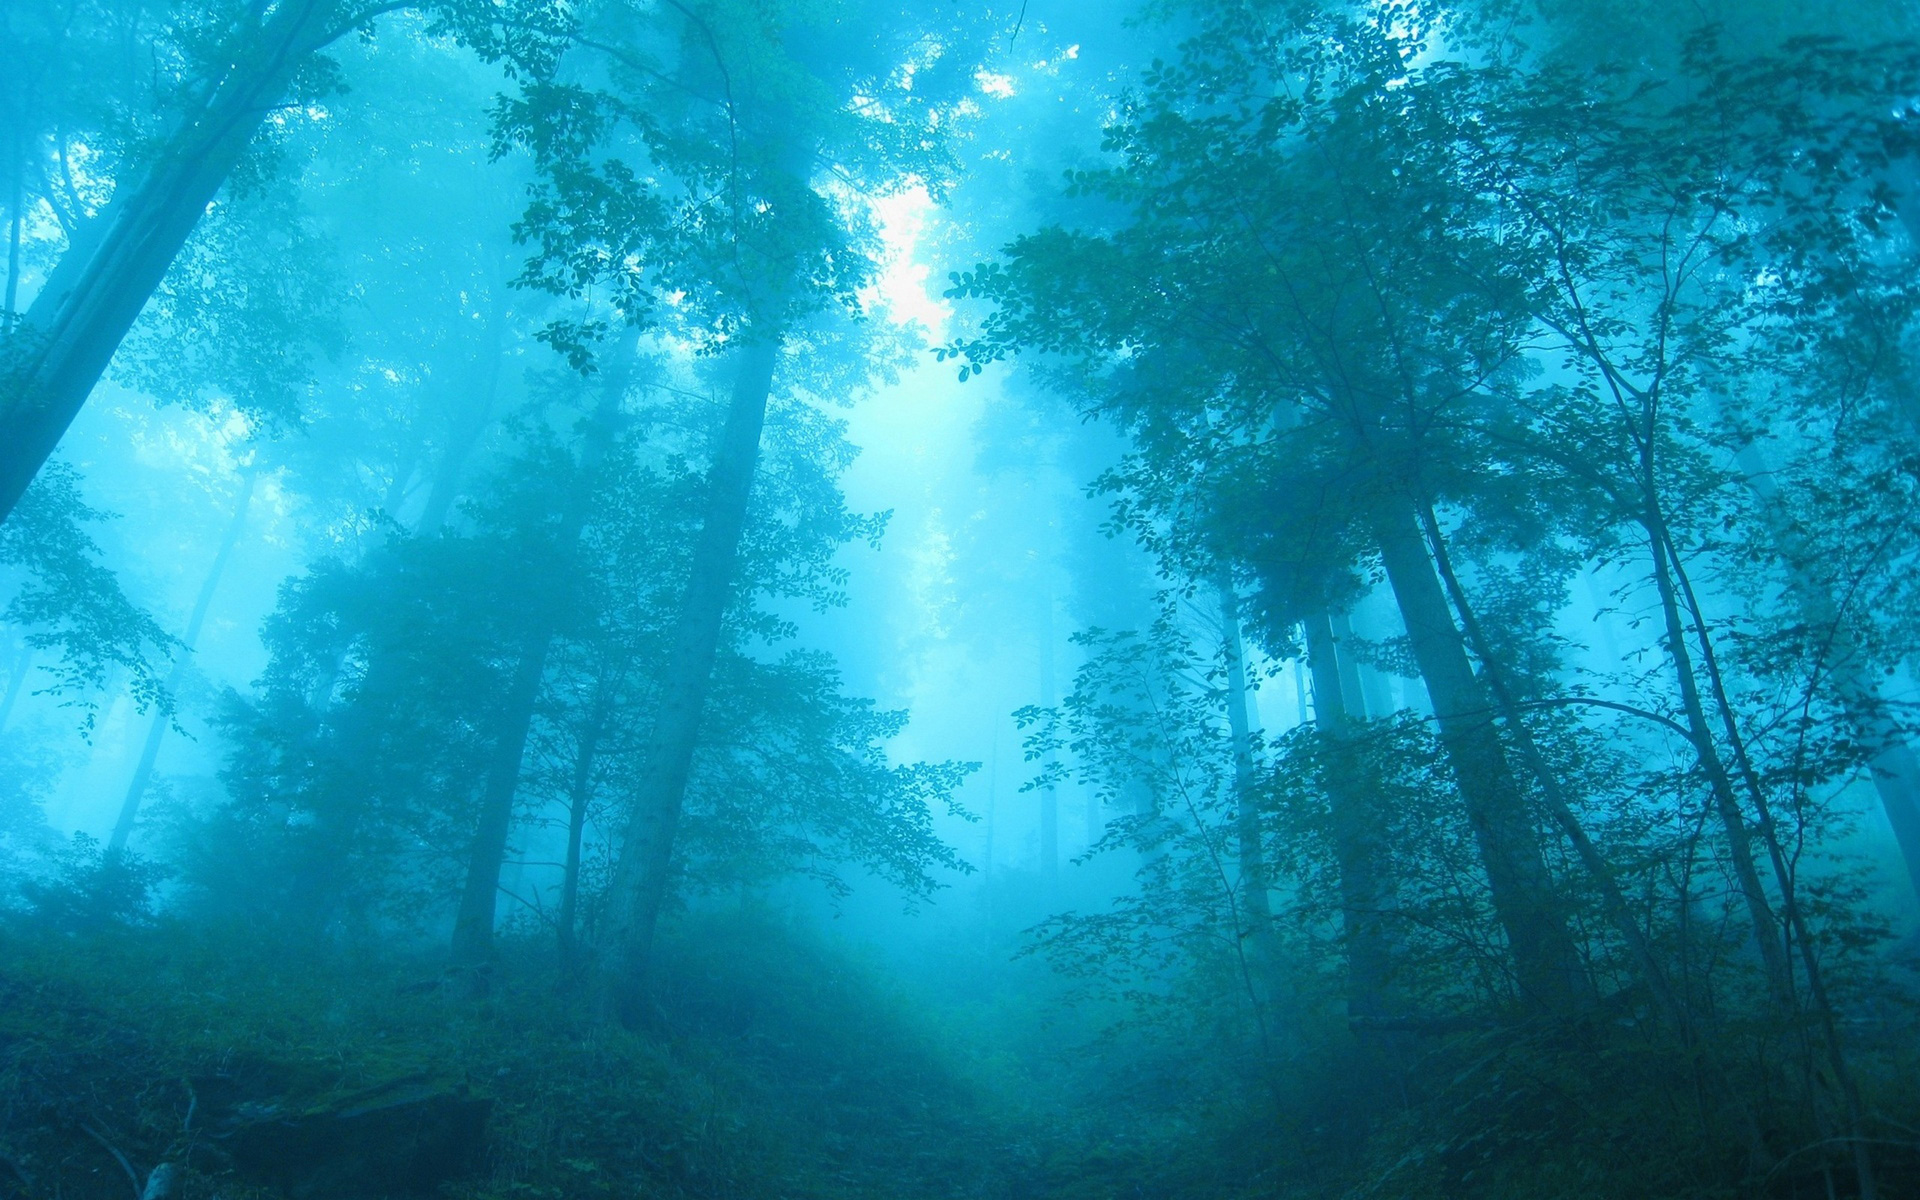 blue_forest_hd_widescreen_wallpapers_1920x1200